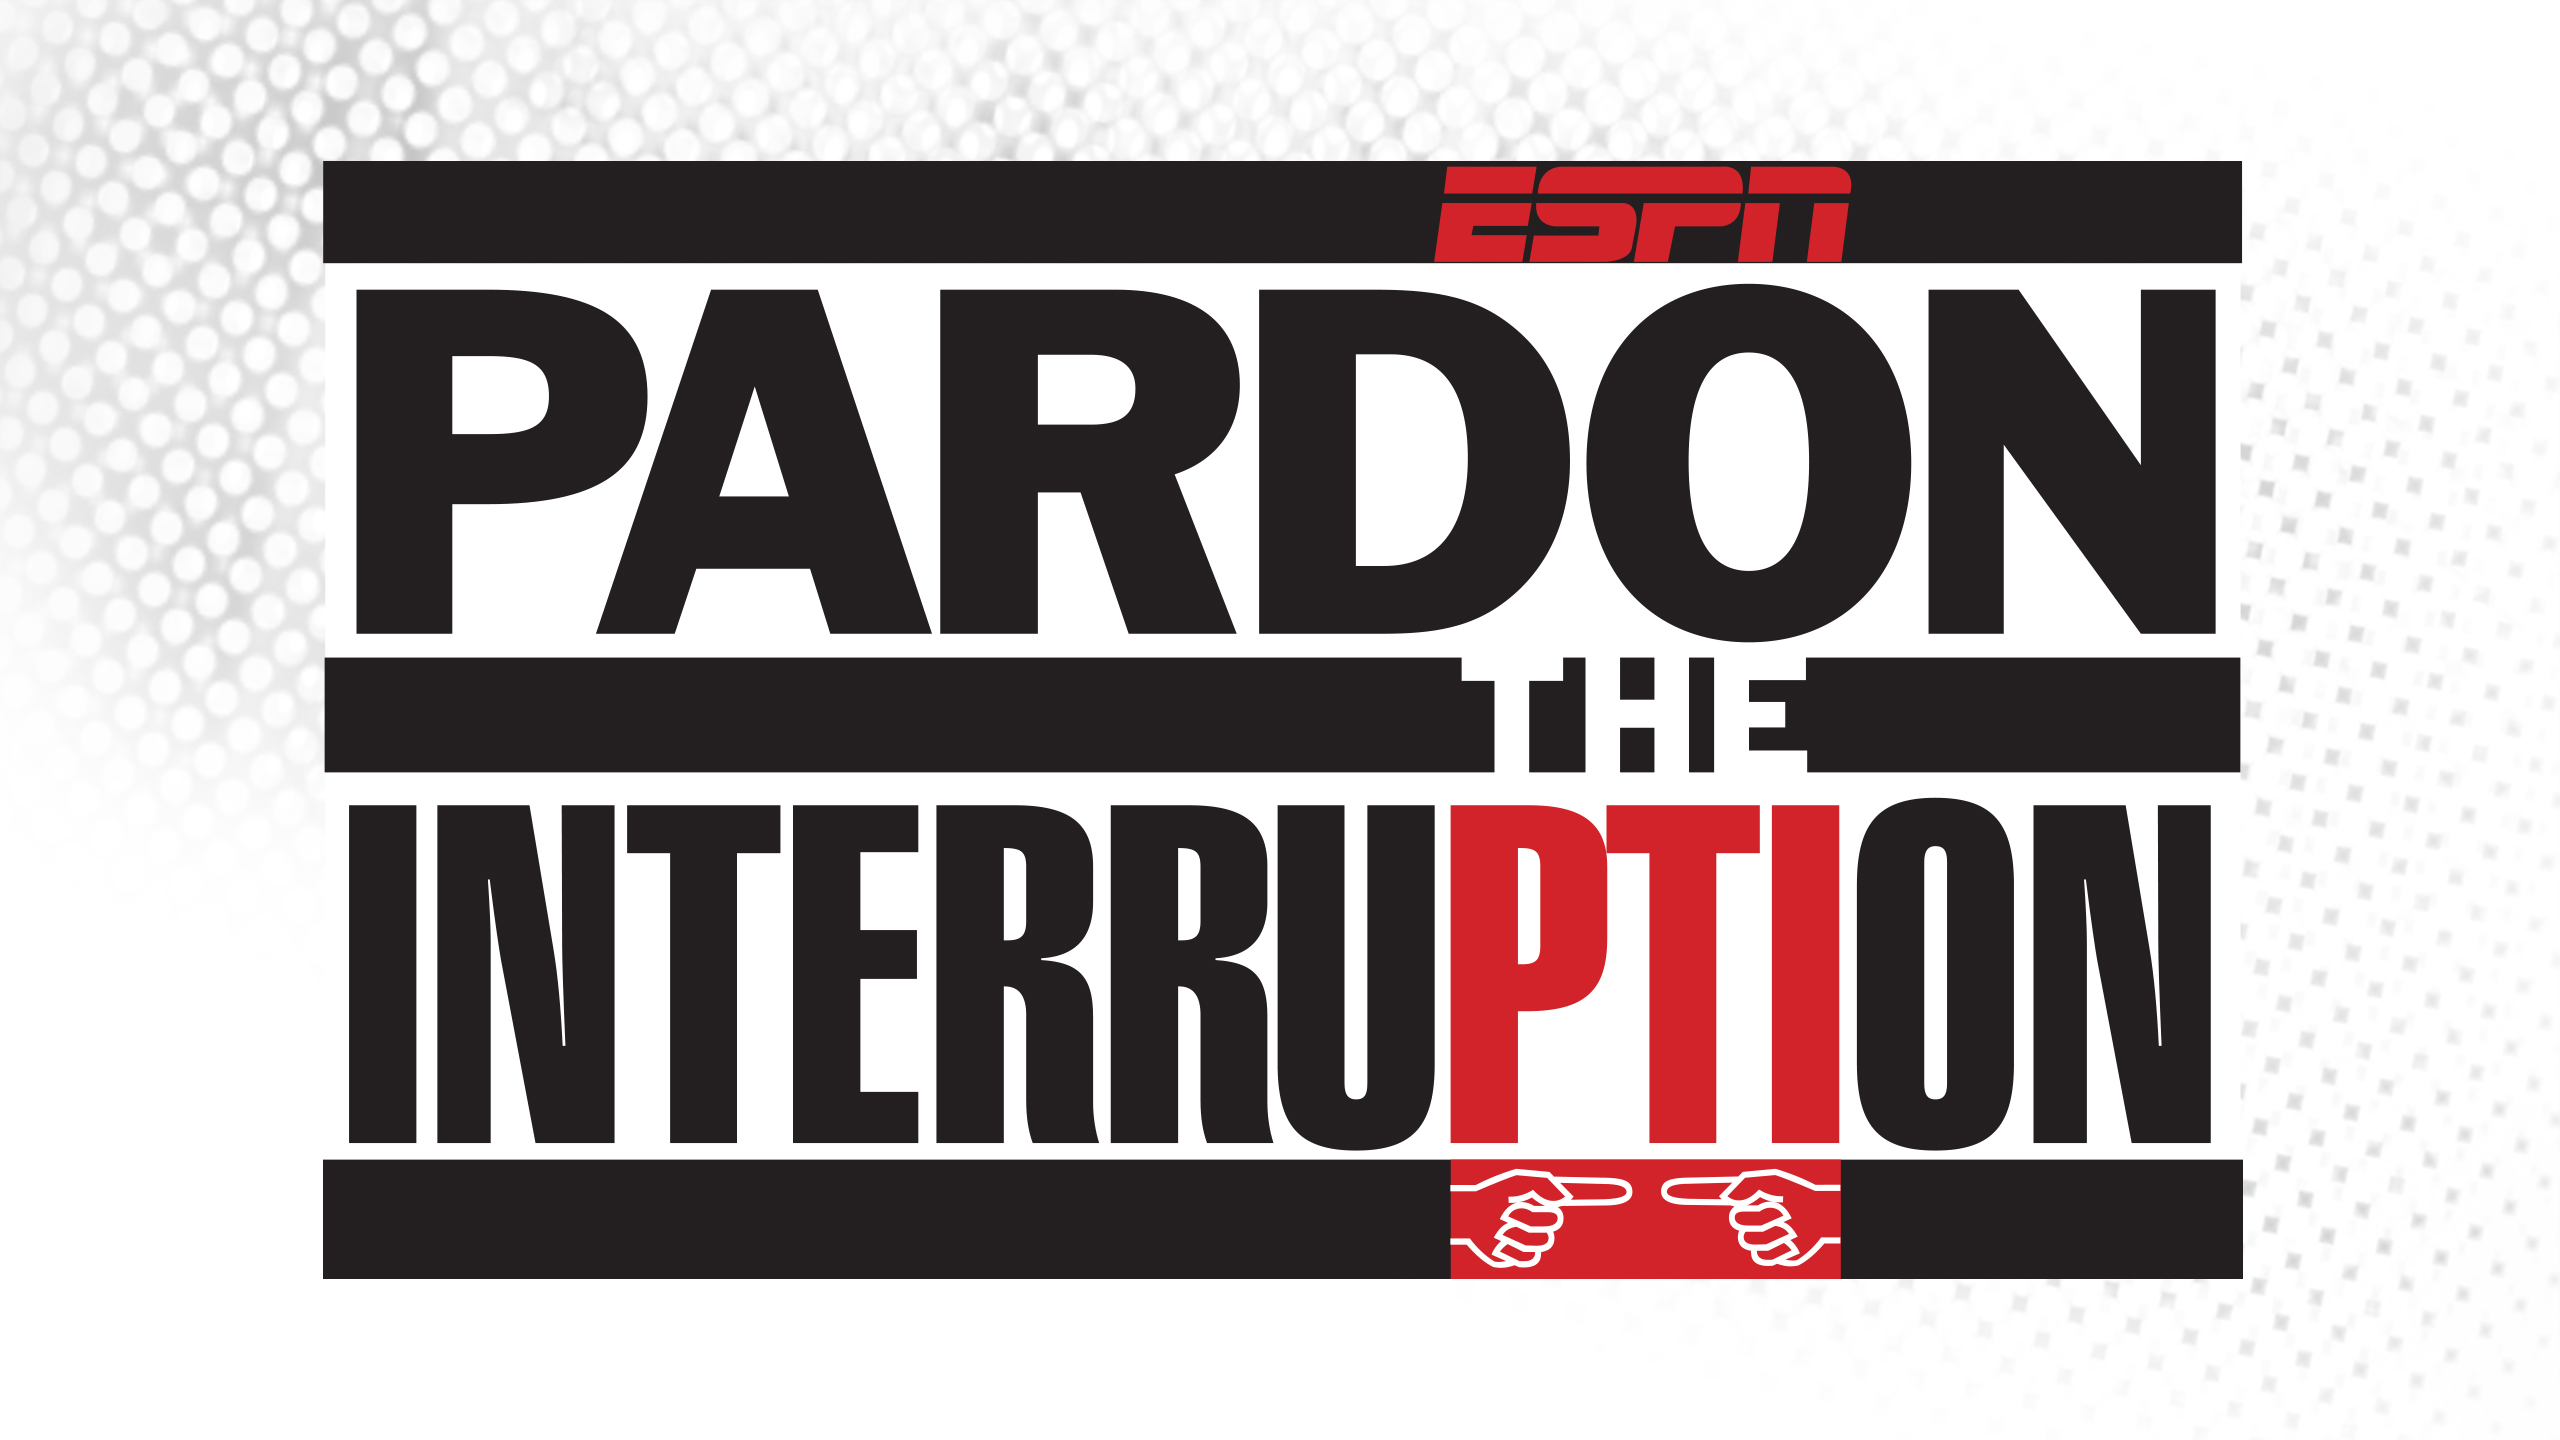 Wed, 2/13 - Pardon The Interruption